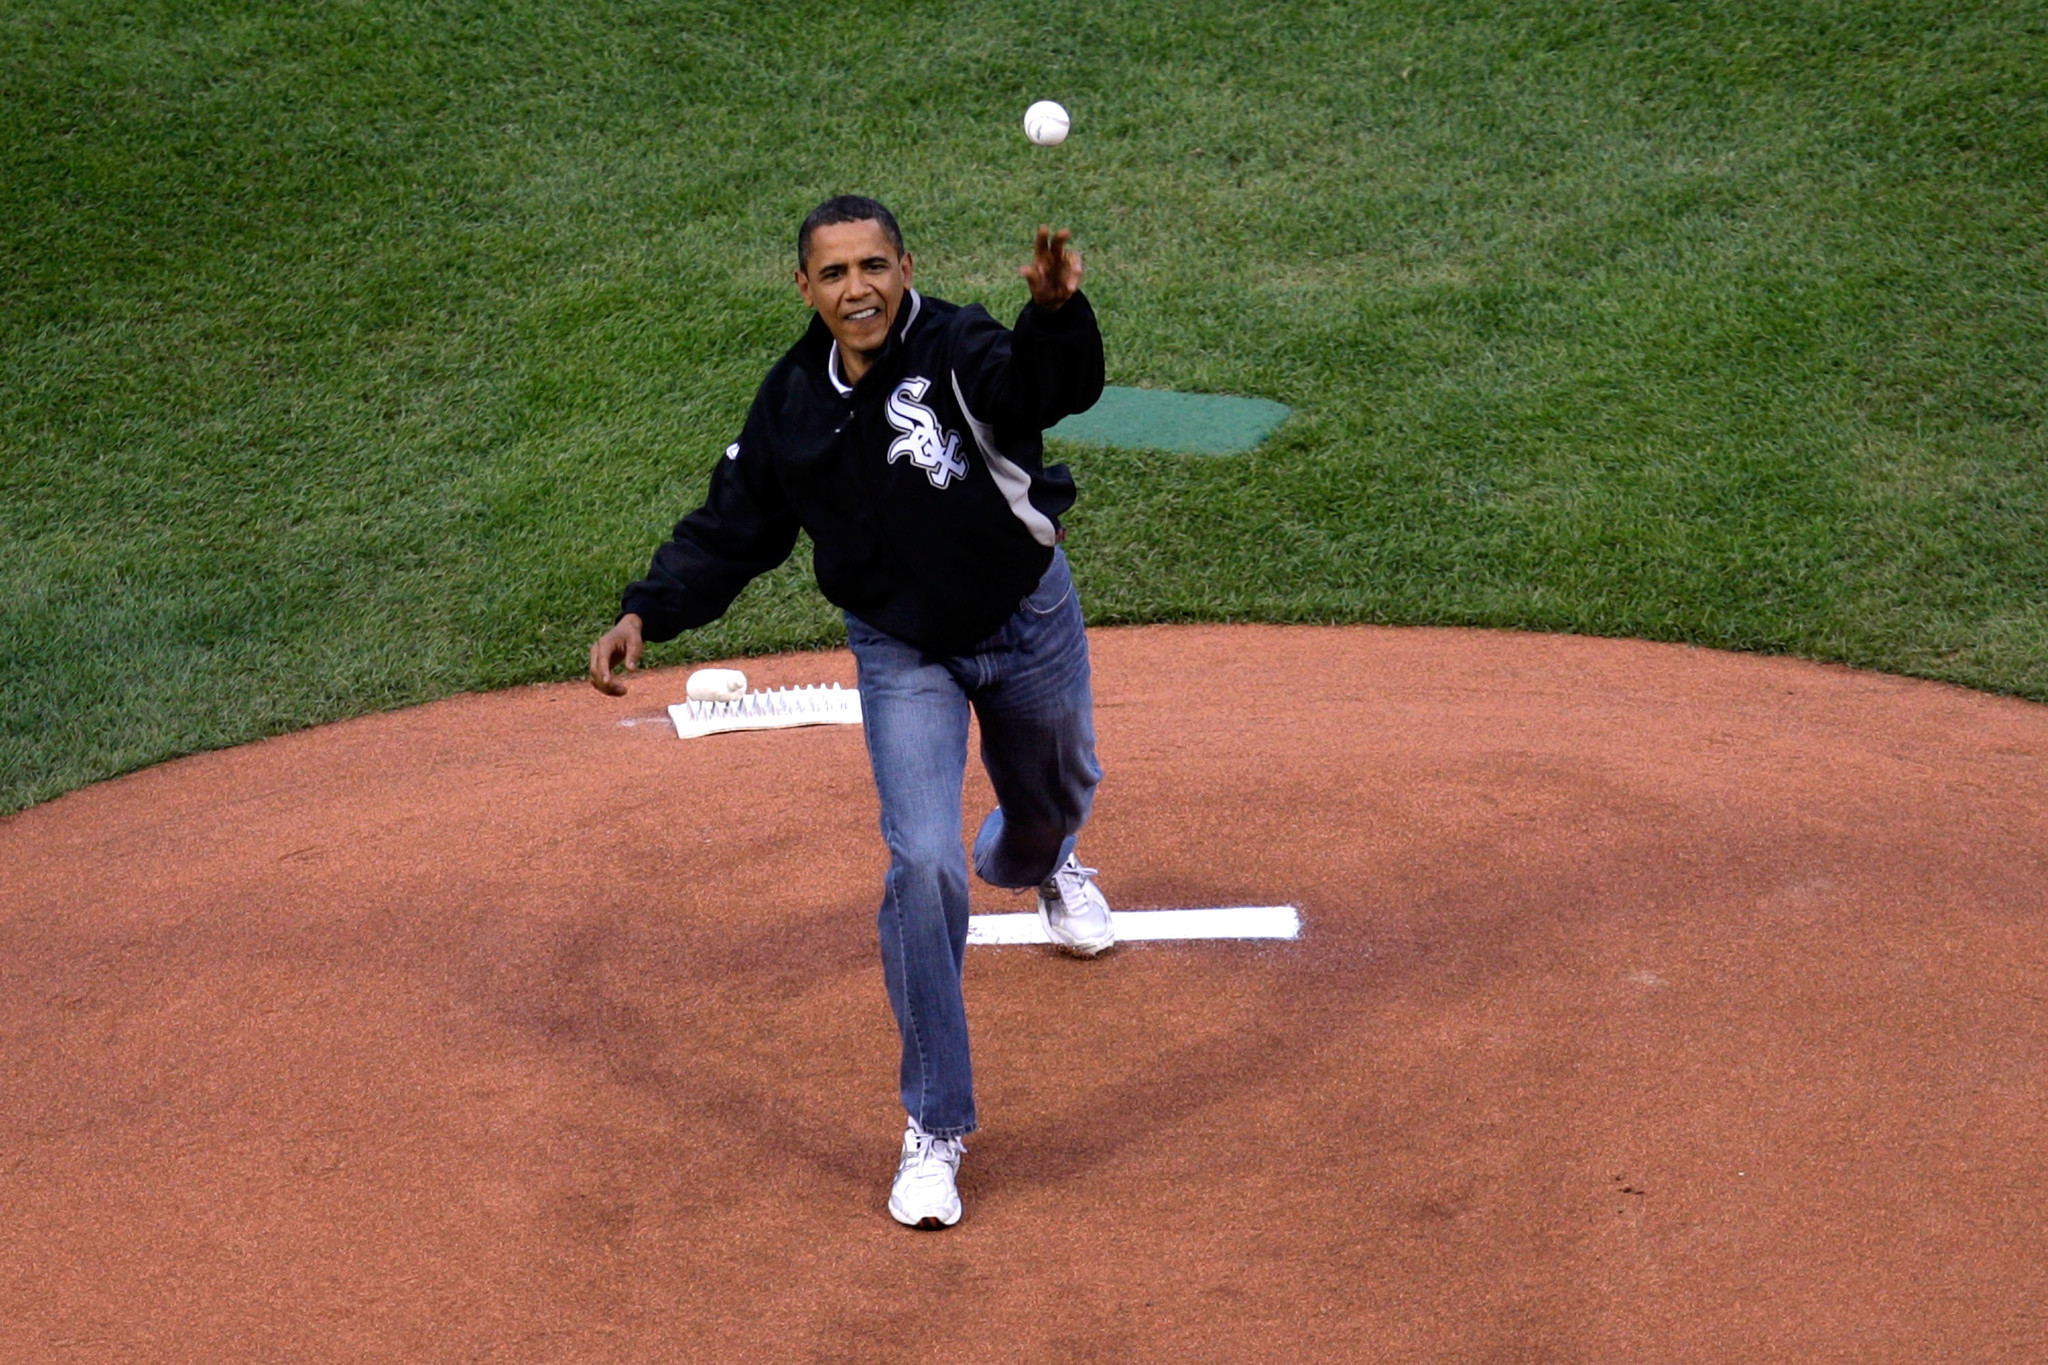 Sox Fan Obama Unlikely To Attend Cubs Playoff Games This Weekend Chicago Tribune